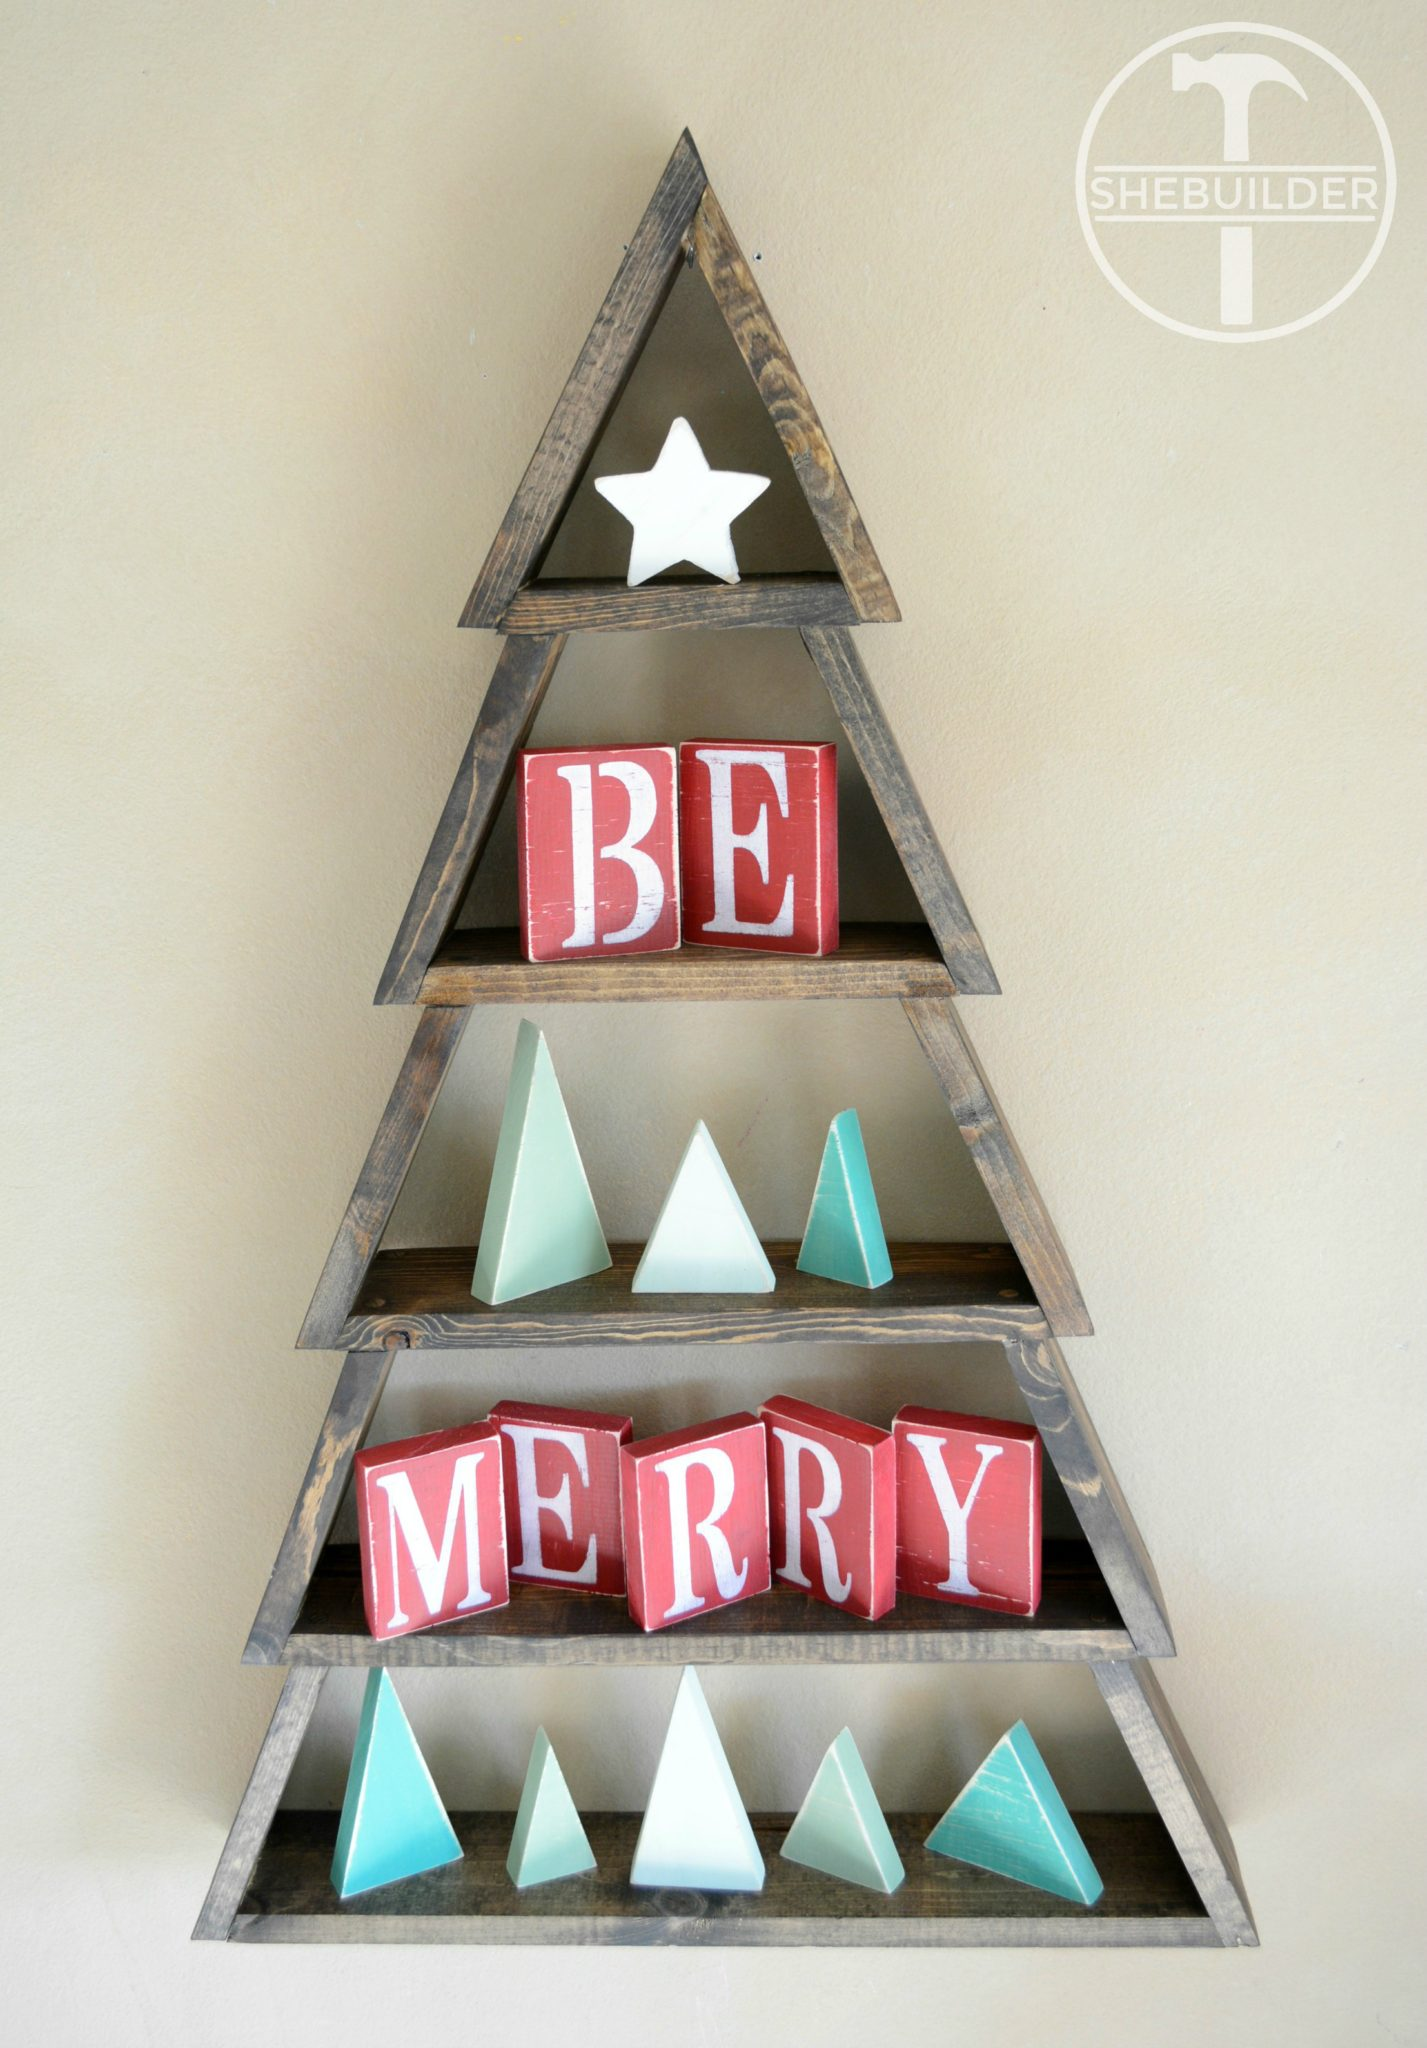 diy wood christmas tree shelf with mini star mini trees and be merry blocks